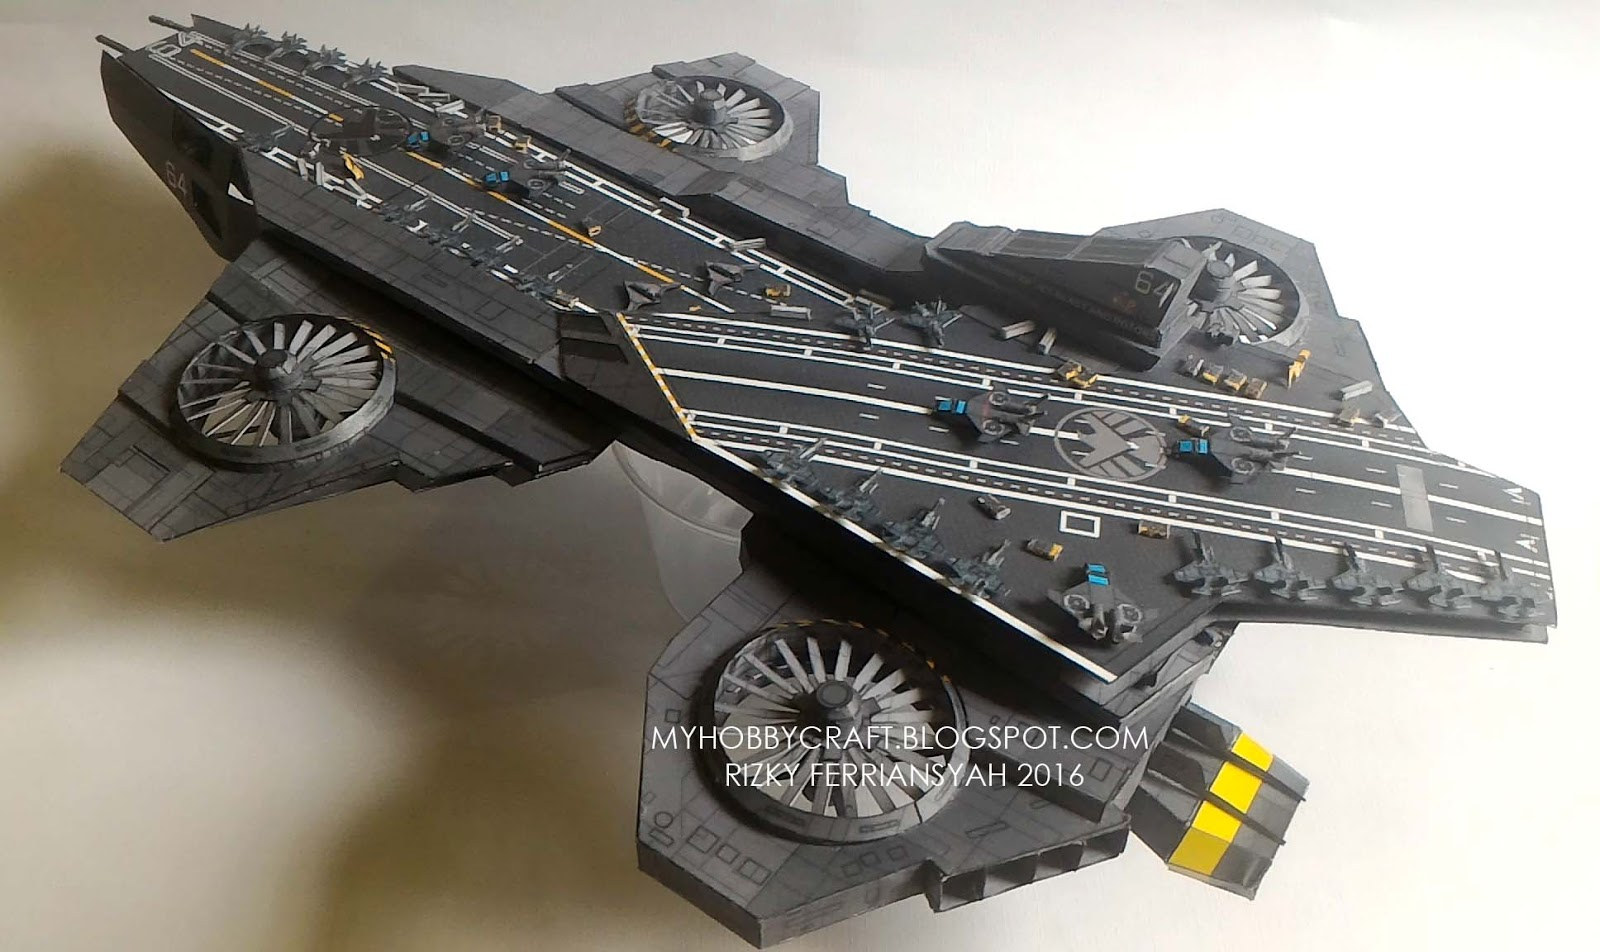 S.H.I.E.L.D HELICARRIER 1:800 (FINISHED MODEL)